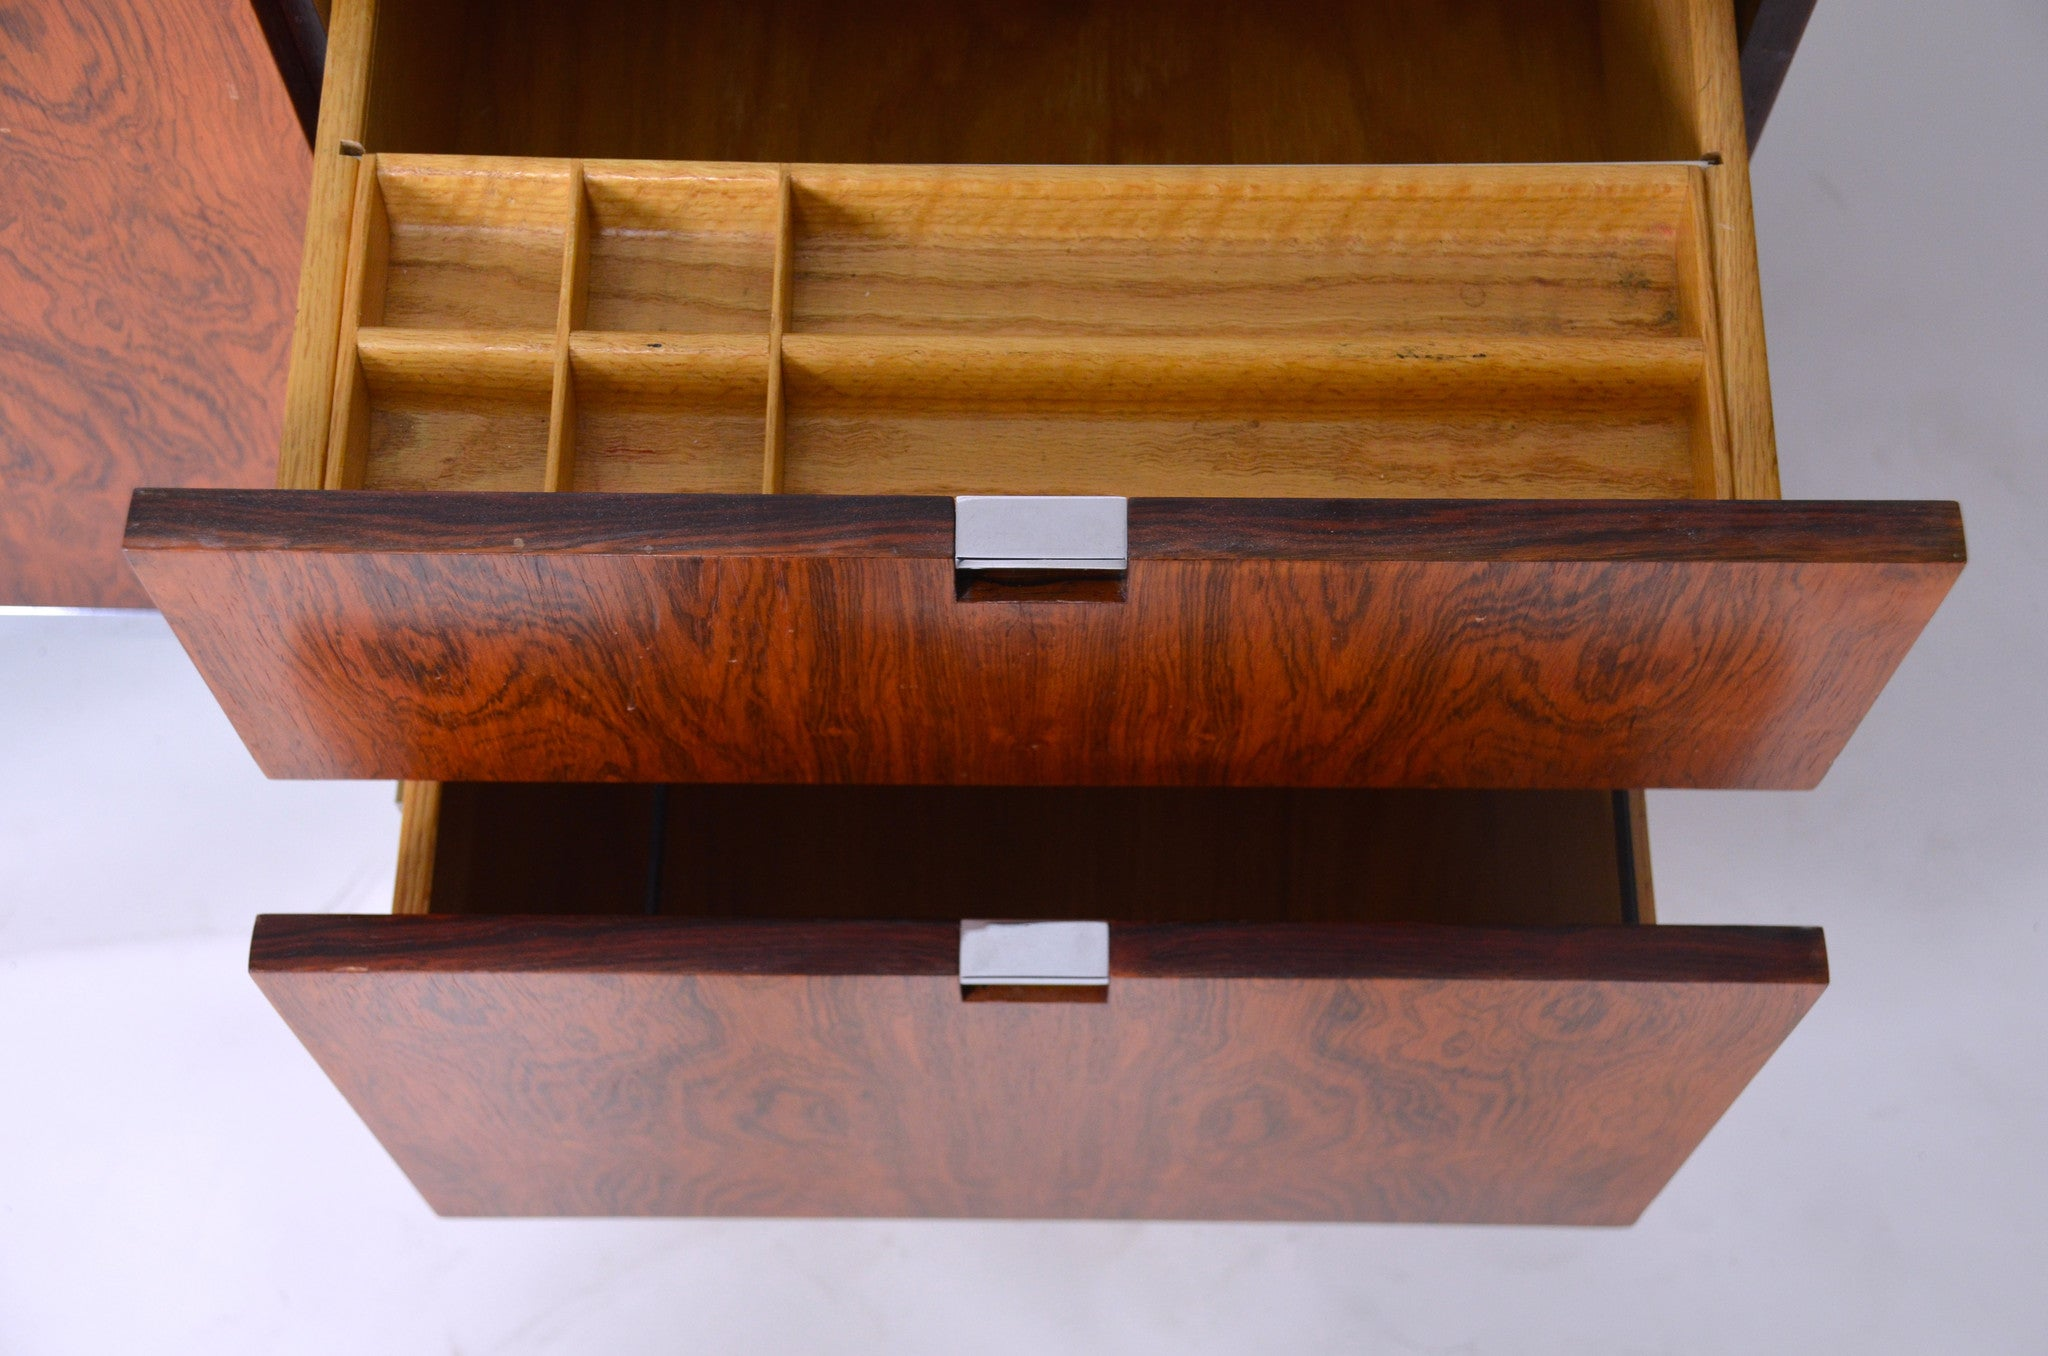 SOLD Florence Knoll Vintage Rosewood and Marble Credenza Cabinet Sideboard